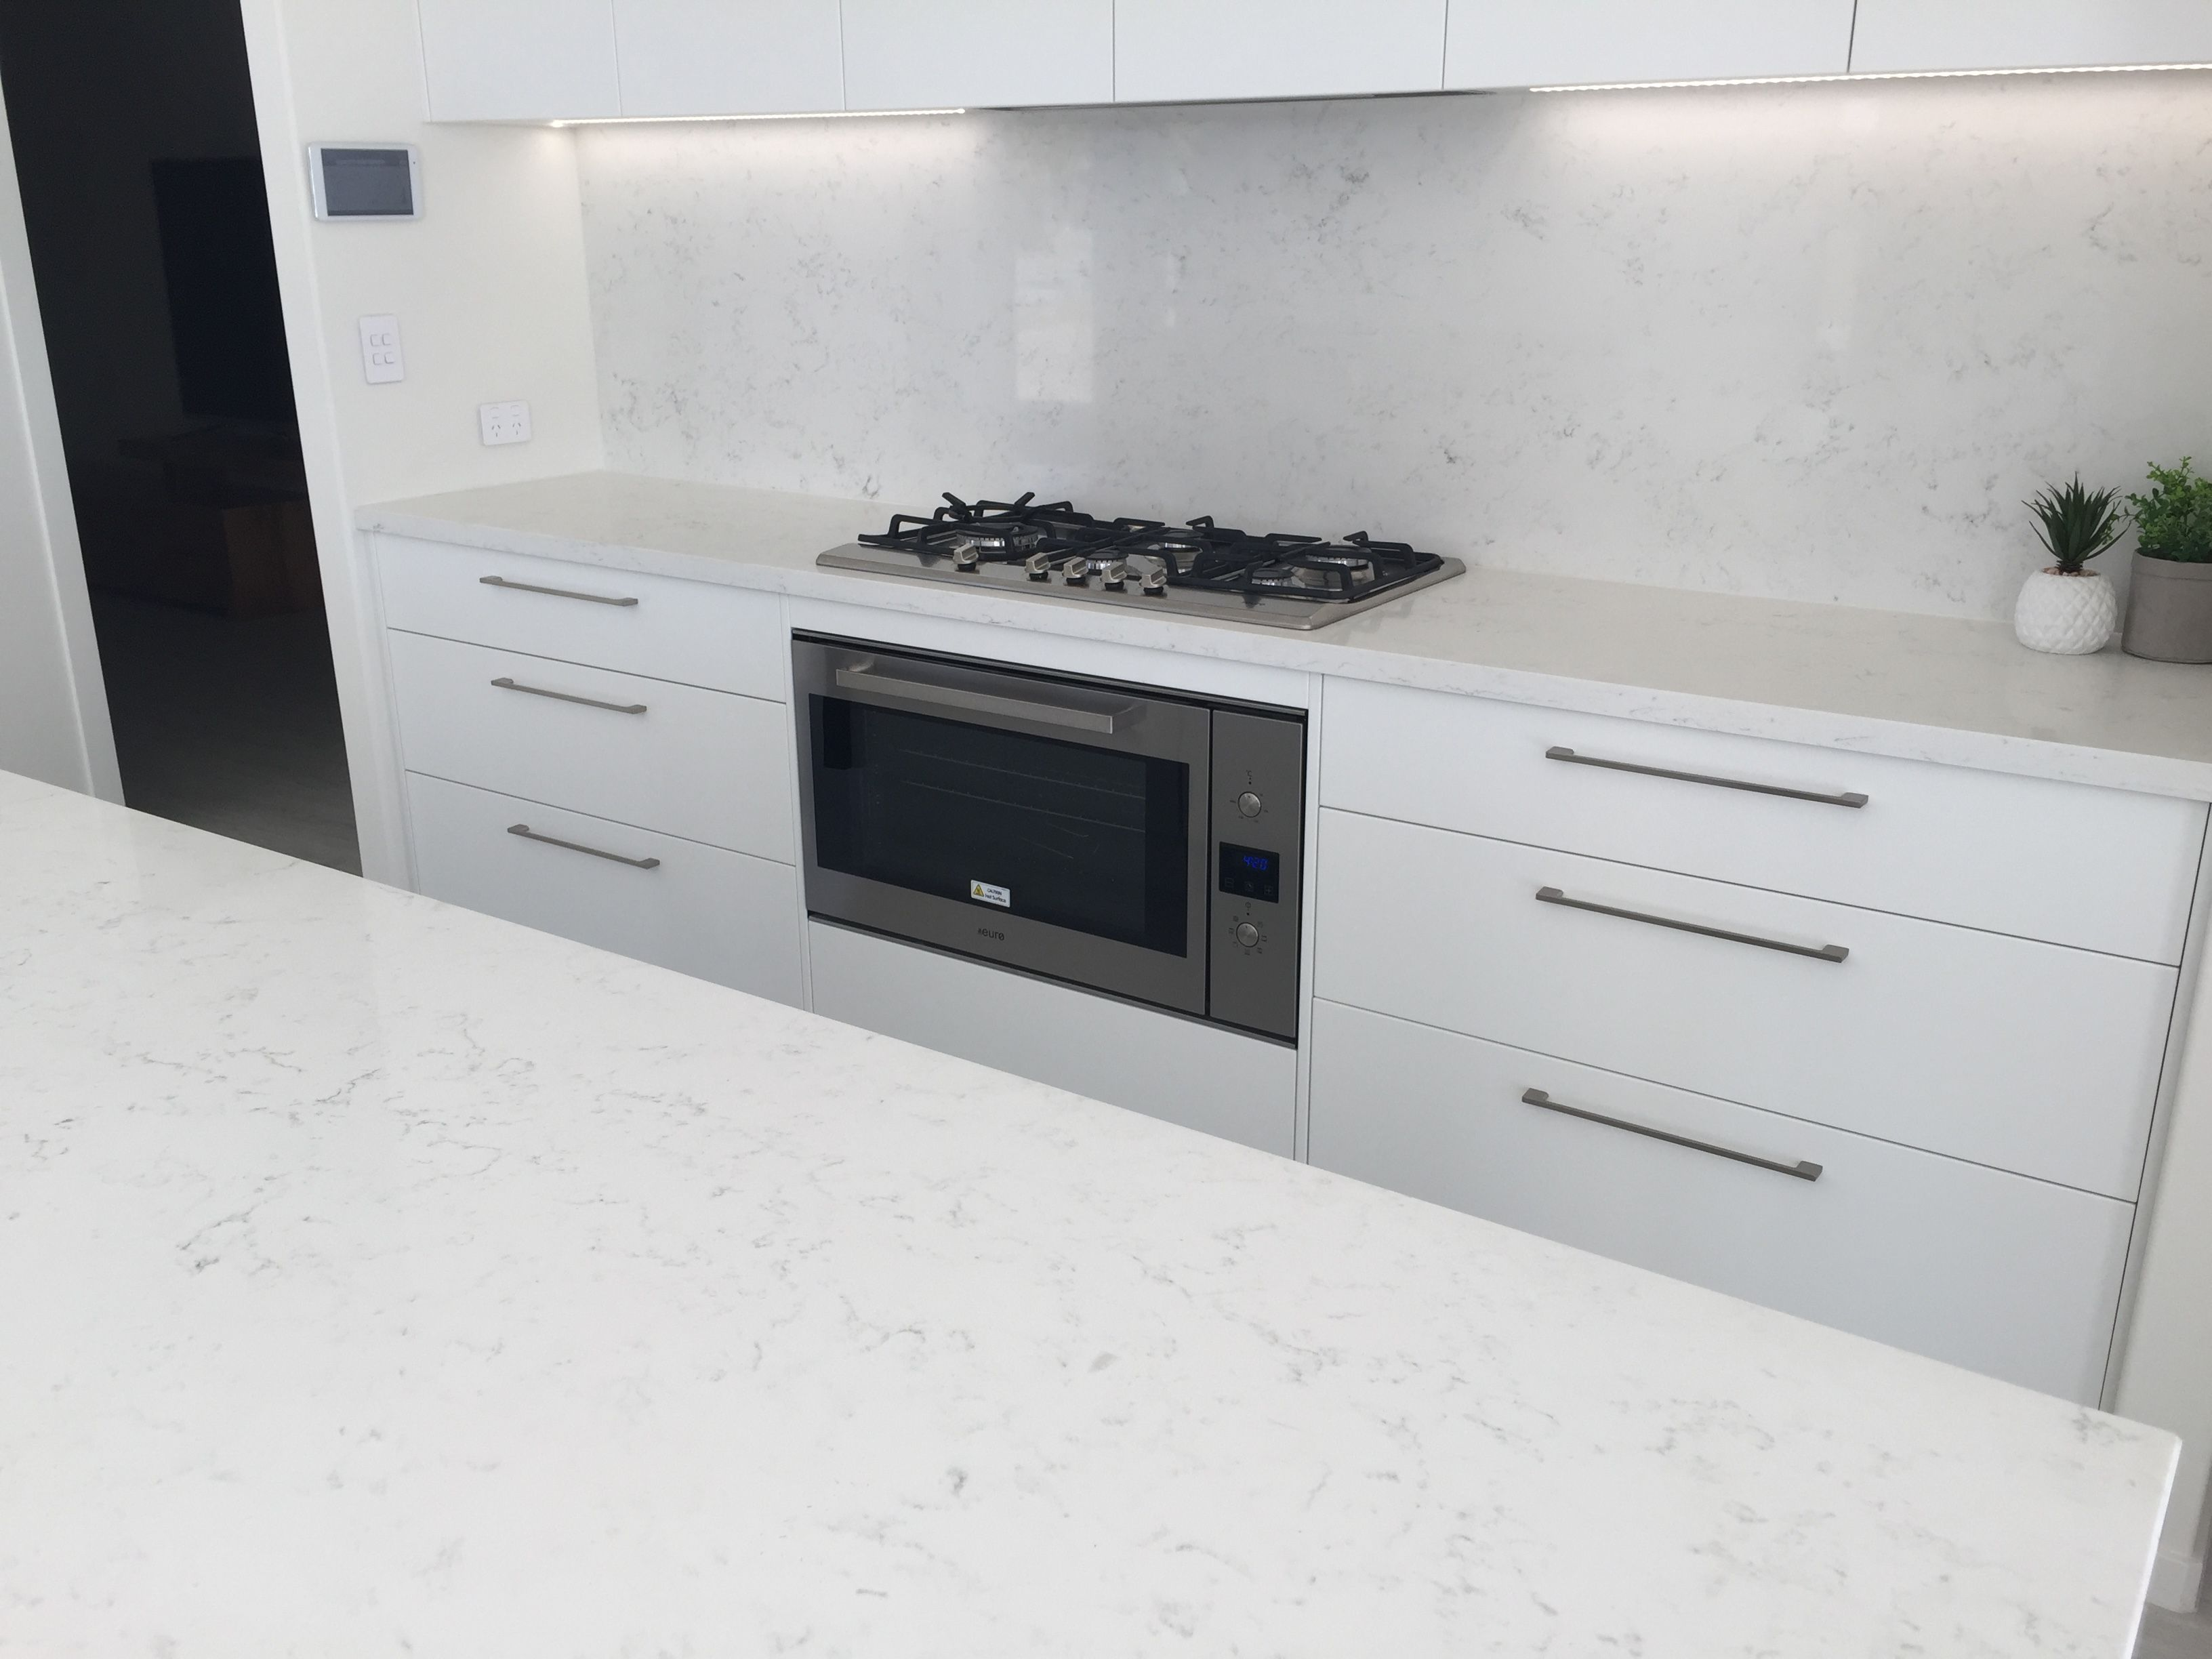 Smartstone Amara Used As Bench Top And Back Splash Cabinetry In